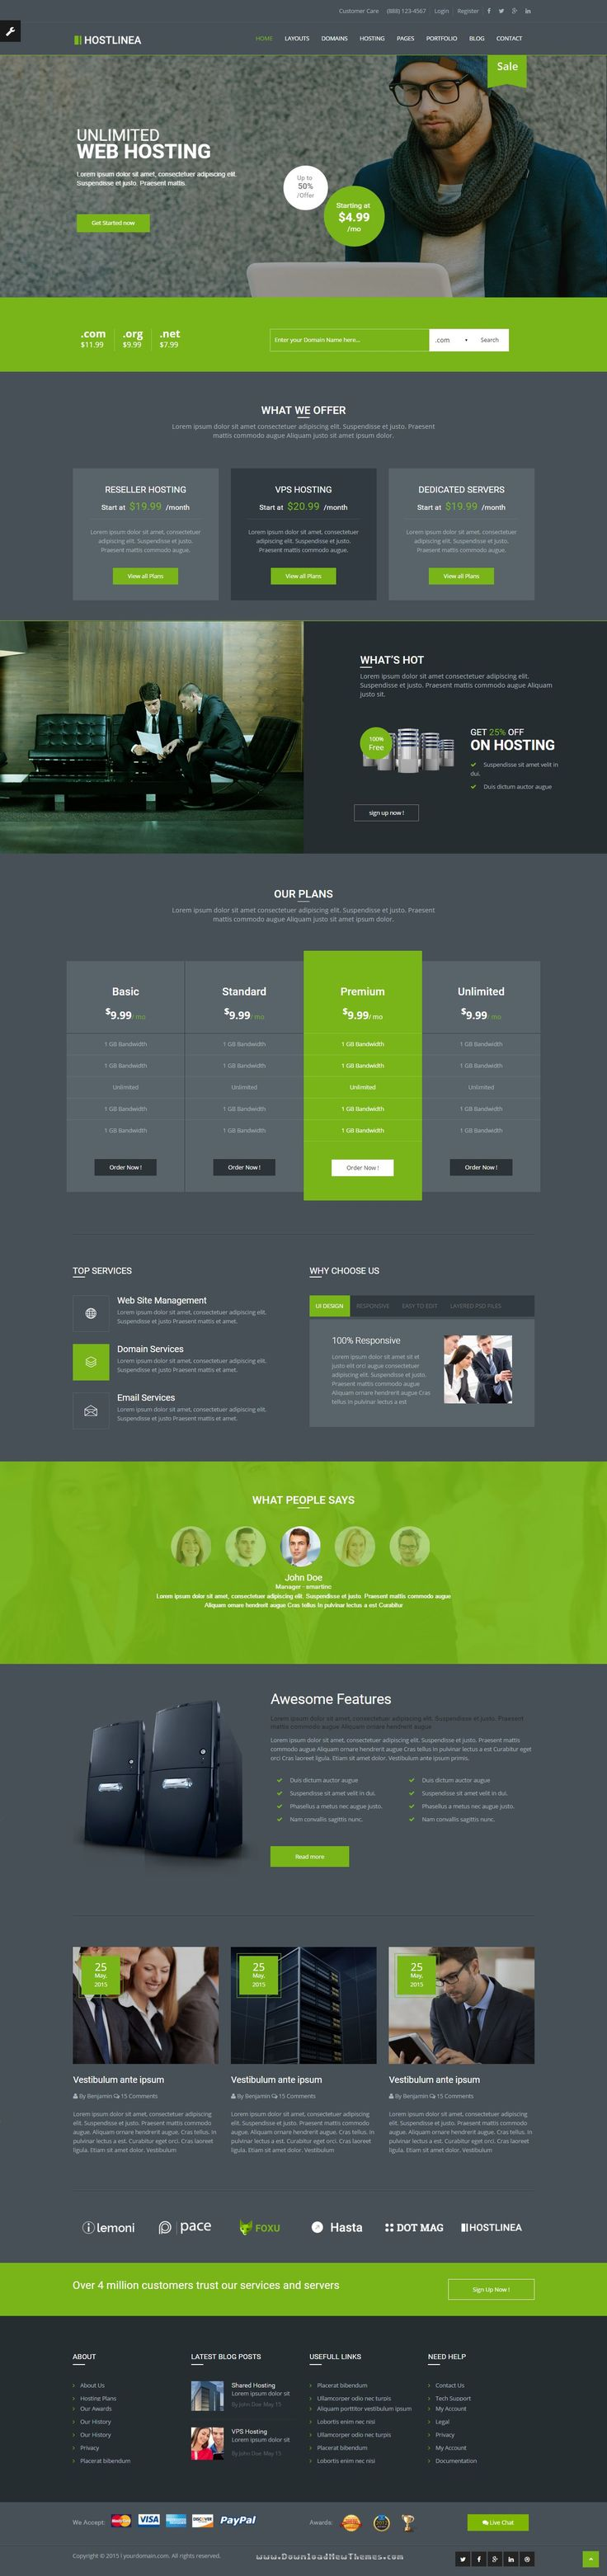 Hostlinea Wonderful Web Hosting, Responsive #HTML5 Template > It comes with… http://templates.jrstudioweb.com/